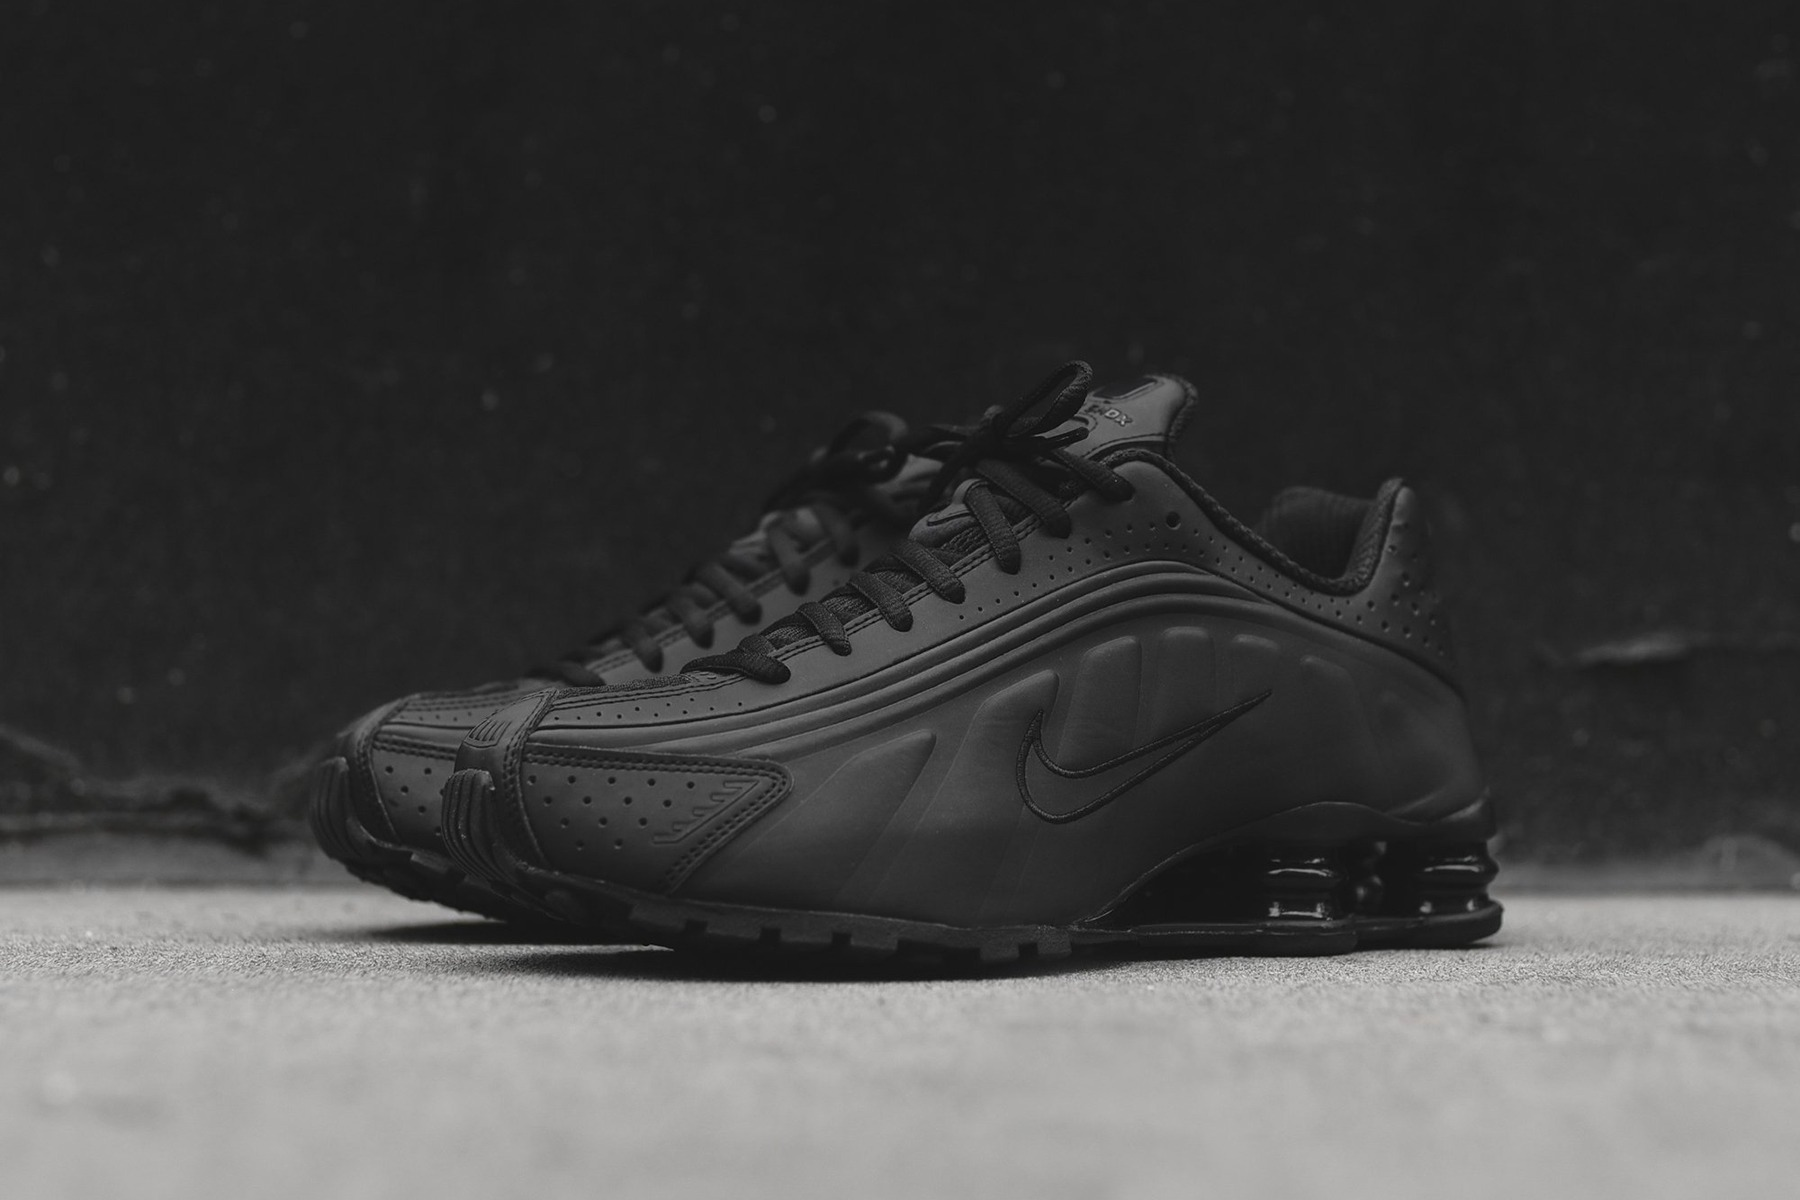 8881030253f9 Nike is pulling the Shox R4 from its archive for a 2019 run. Your options  to score the silhouette include the triple black colorway of the retro  runner.